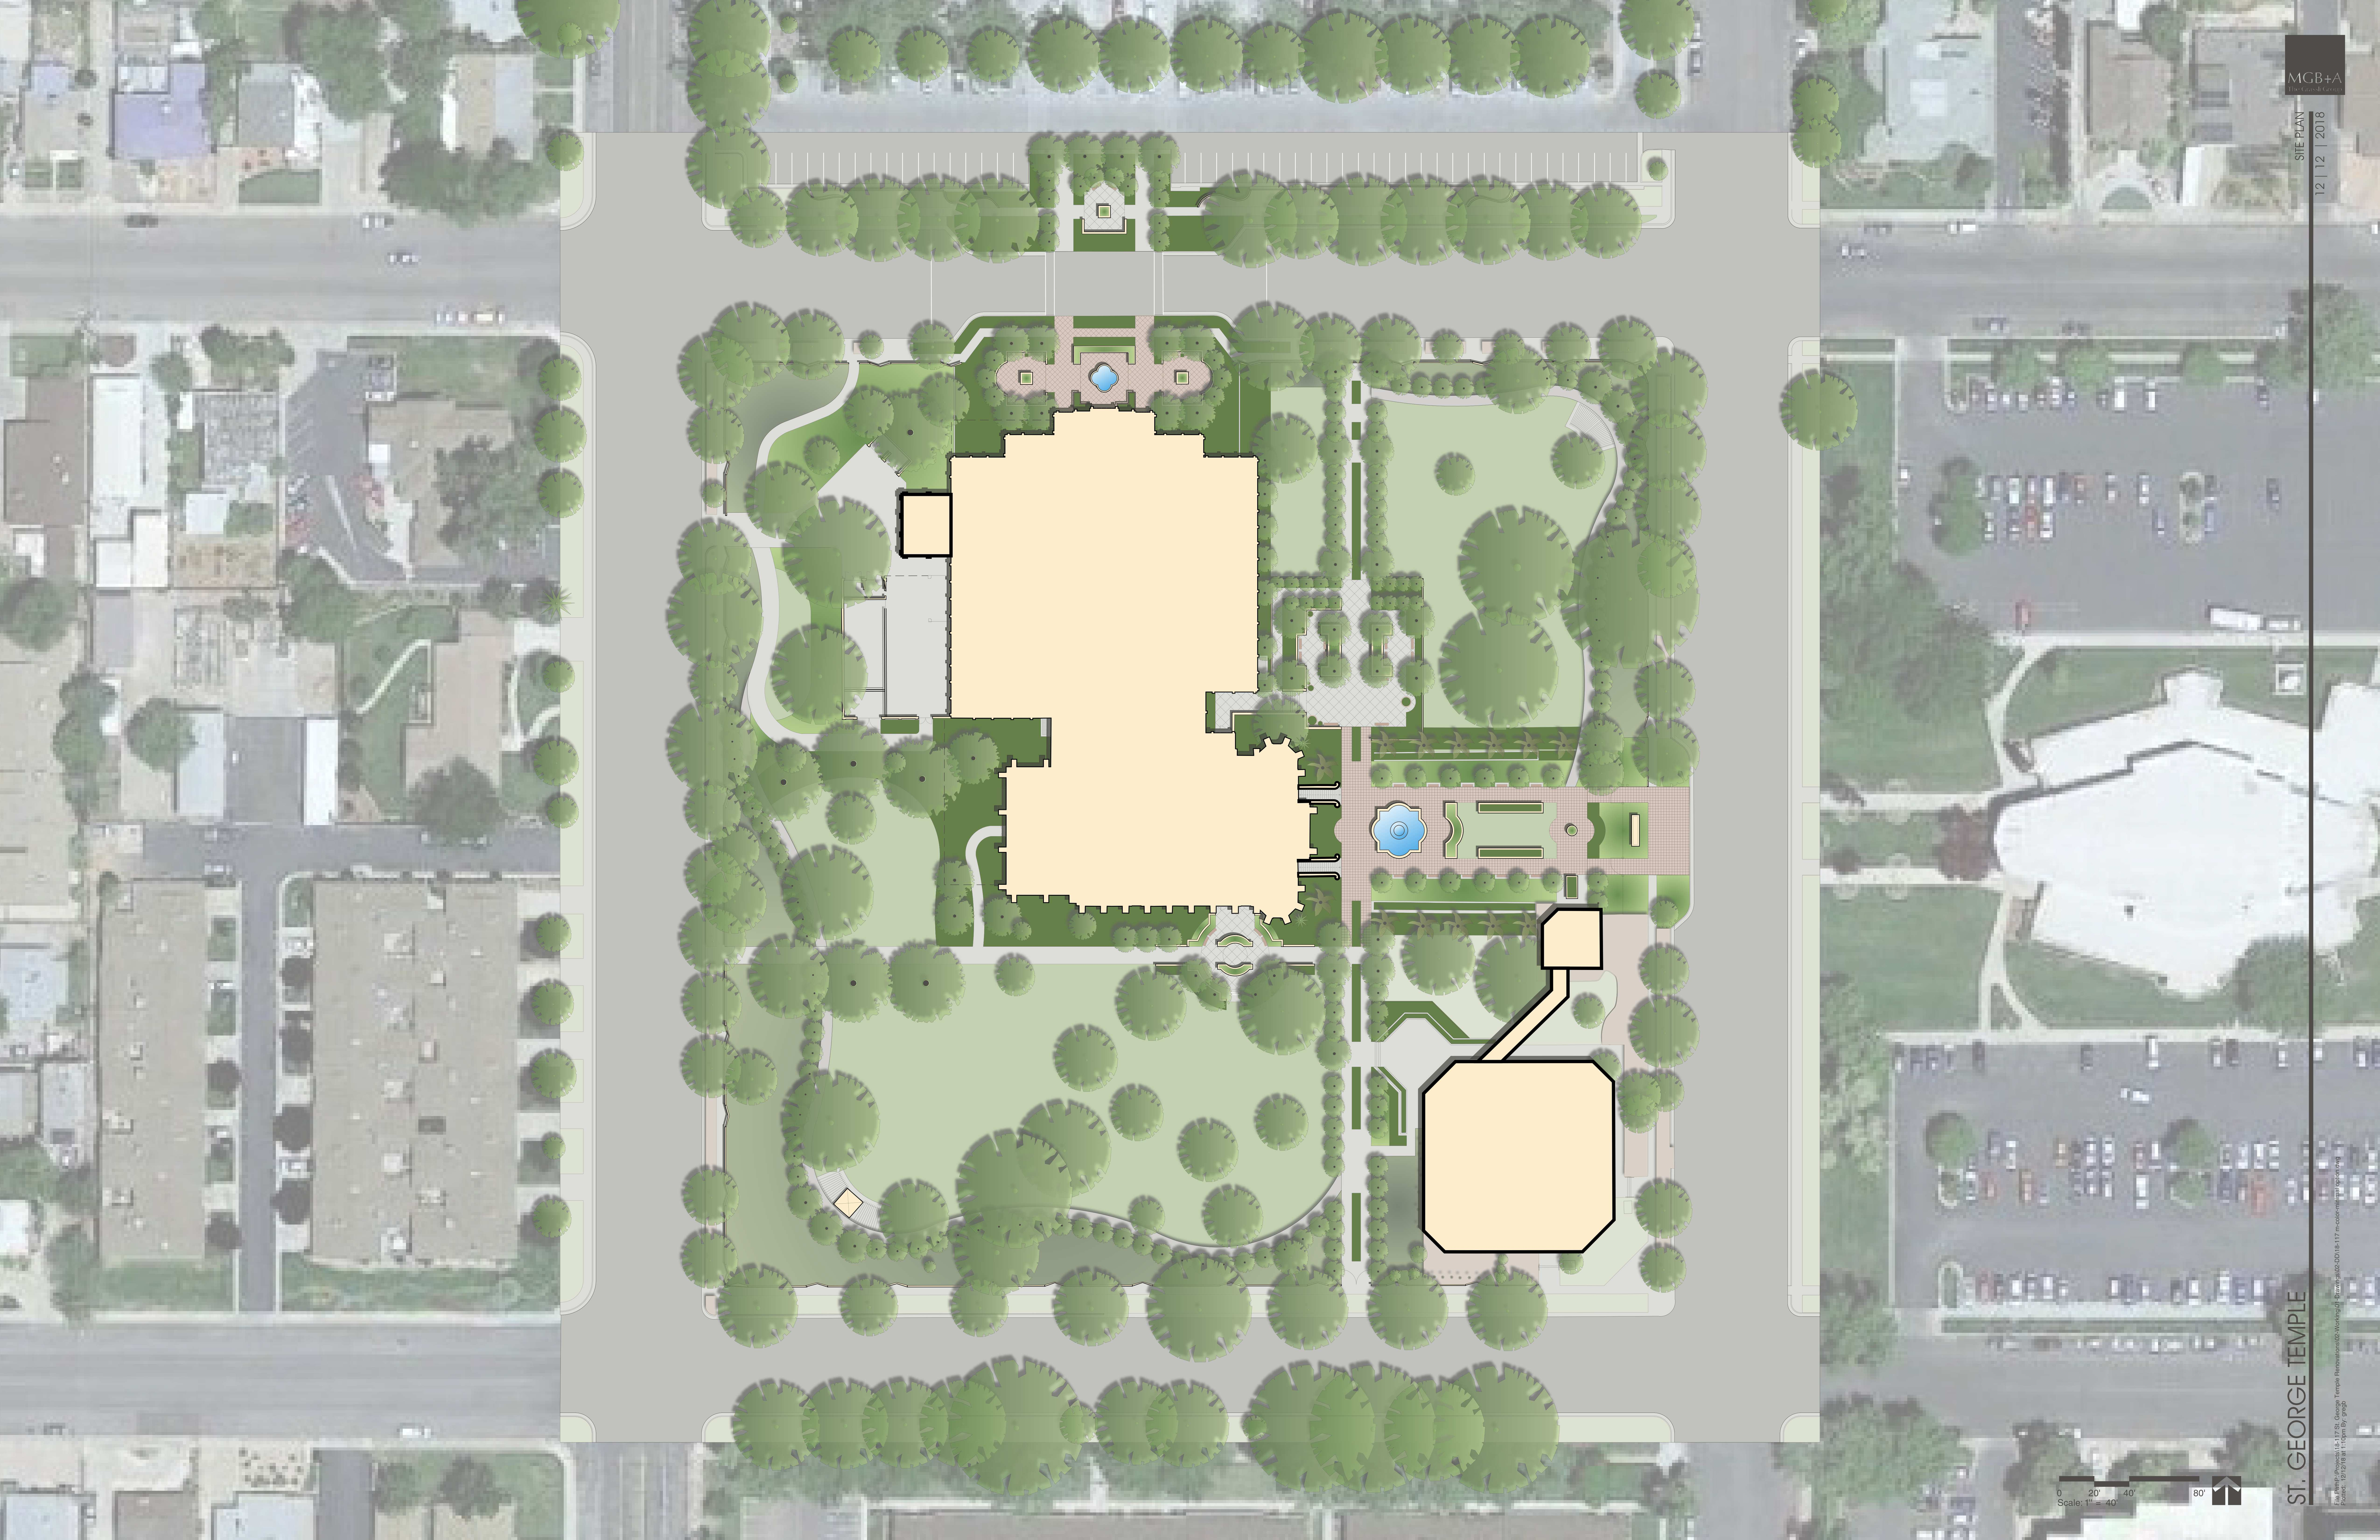 The site plan of the St. George Utah Temple following extensive renovations.